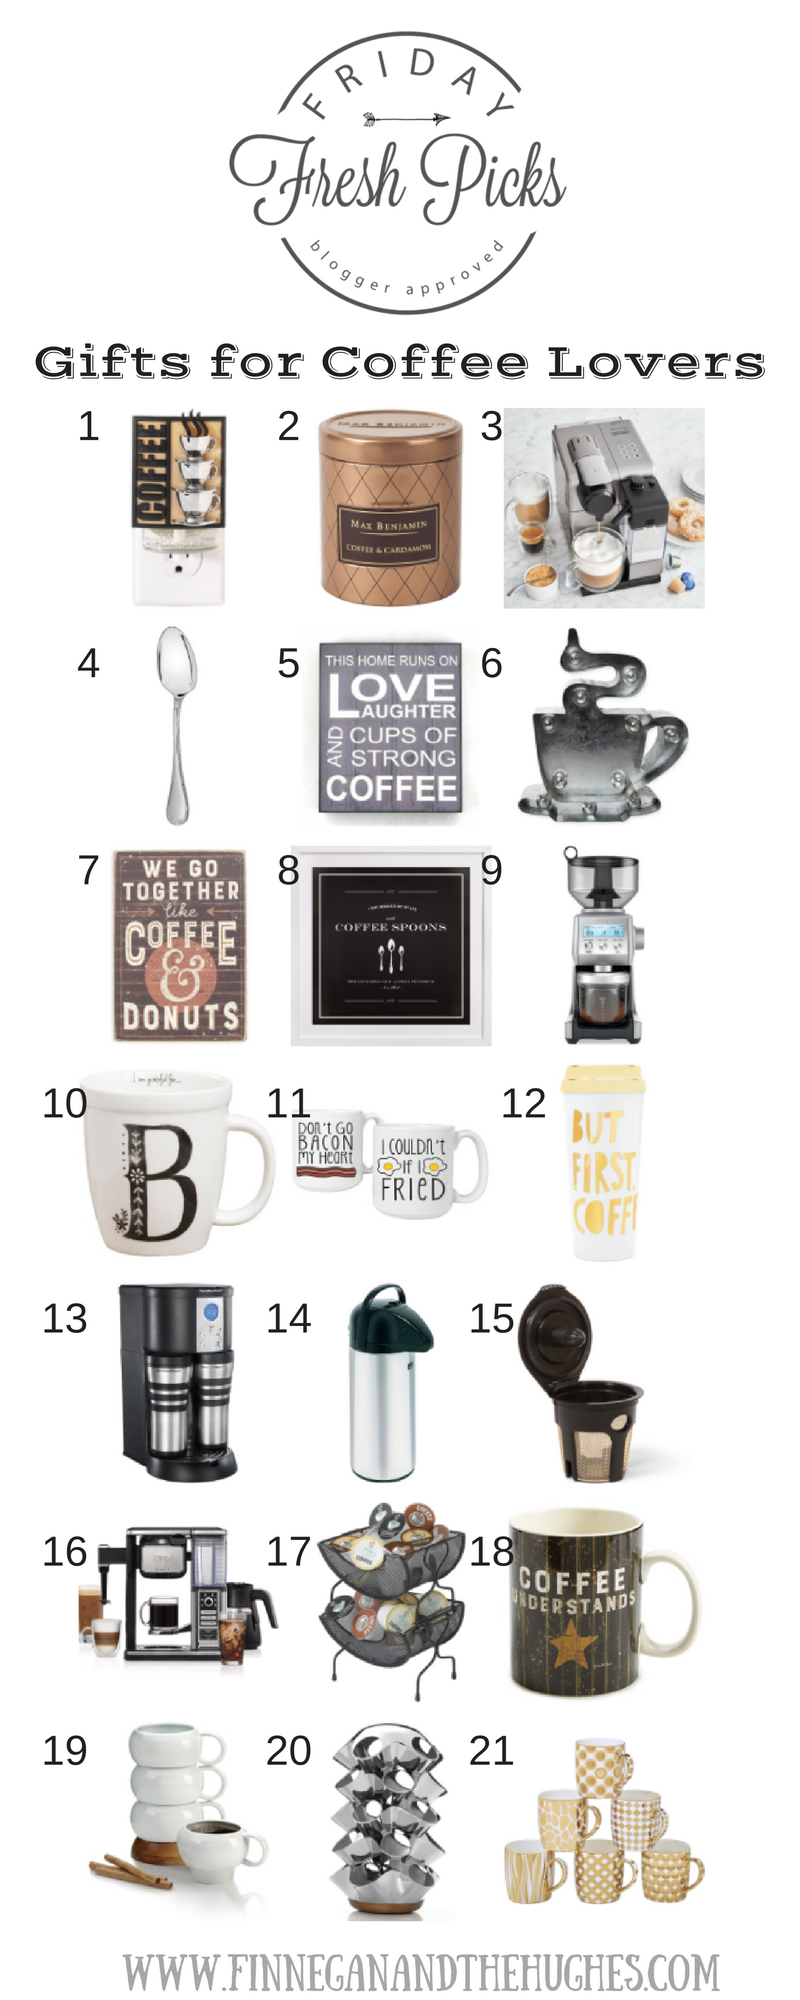 Friday Fresh Picks Gifts for Coffee Lovers